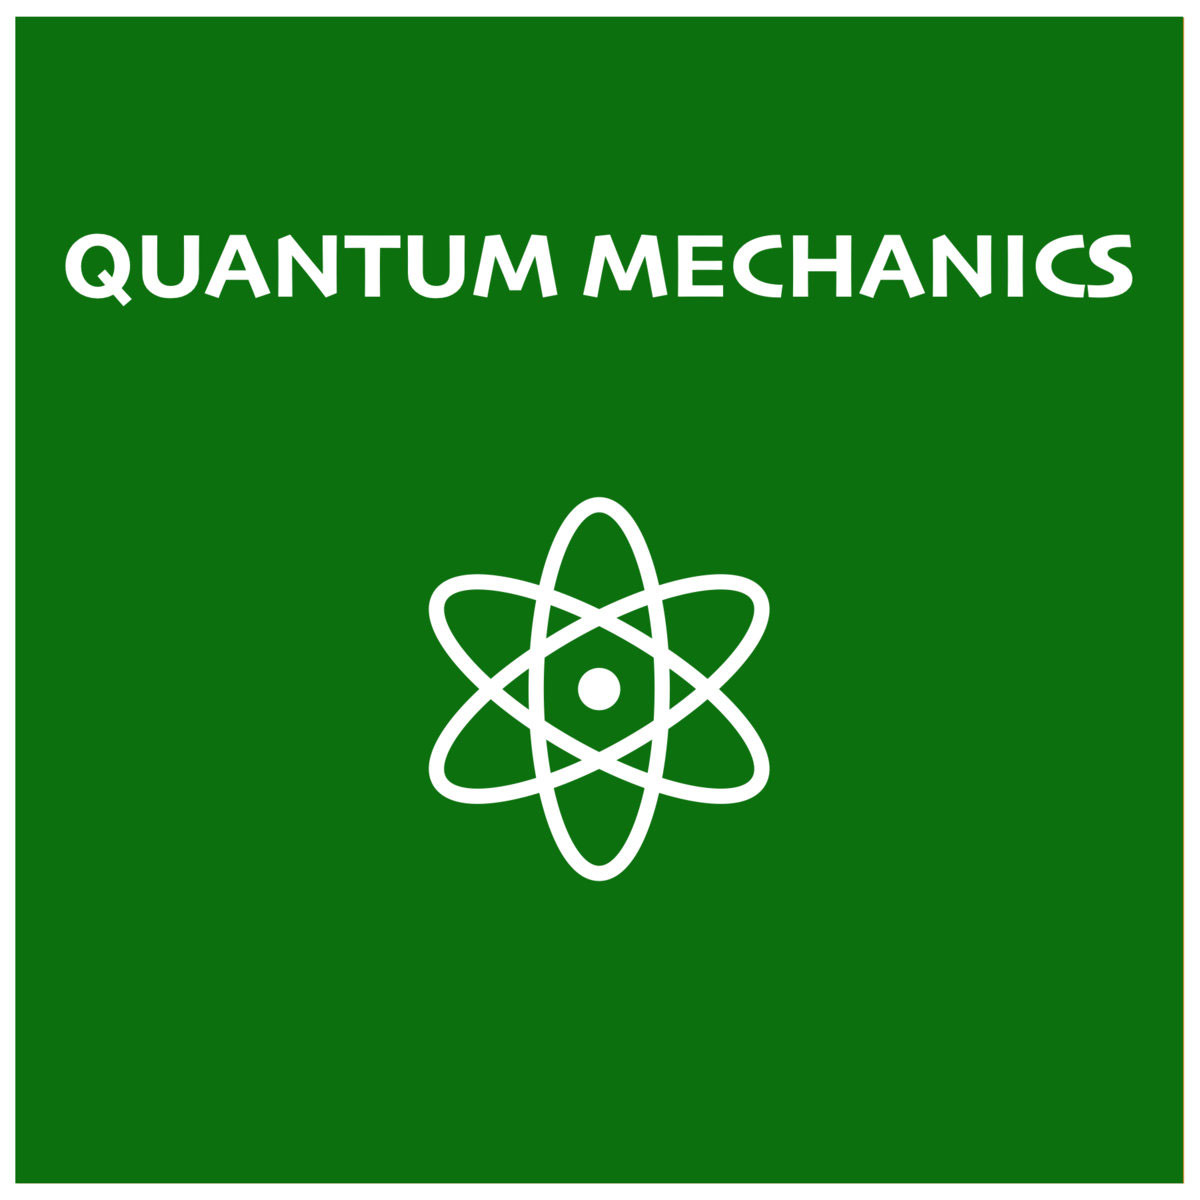 Quantum Mechanics by John Alexander Durr